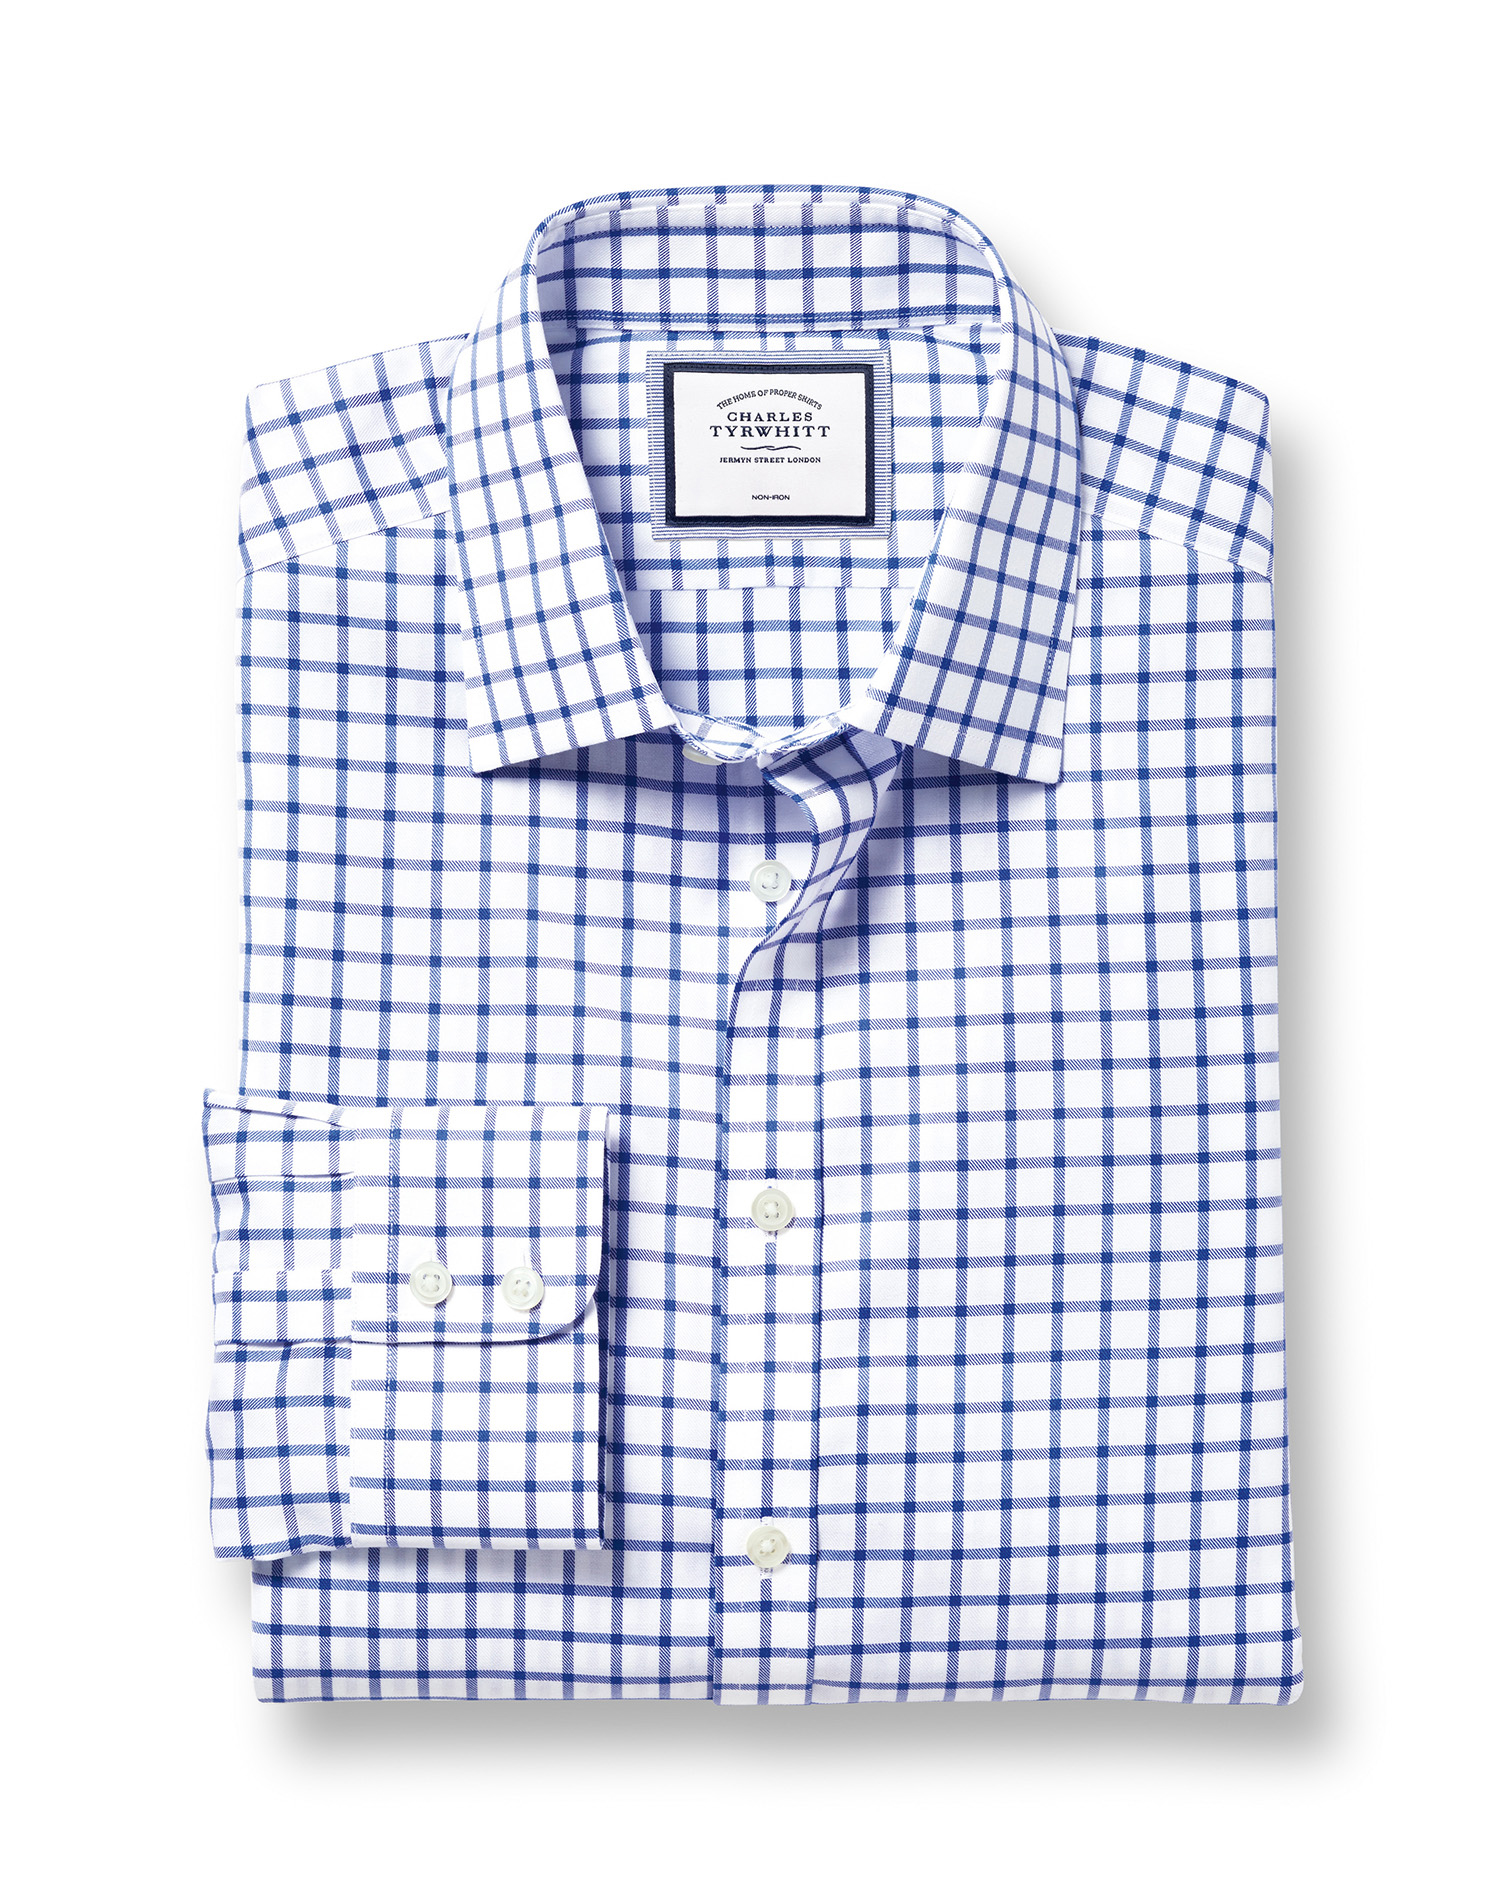 Classic Fit Non-Iron Royal Blue Grid Check Twill Cotton Formal Shirt Double Cuff Size 17.5/38 by Cha